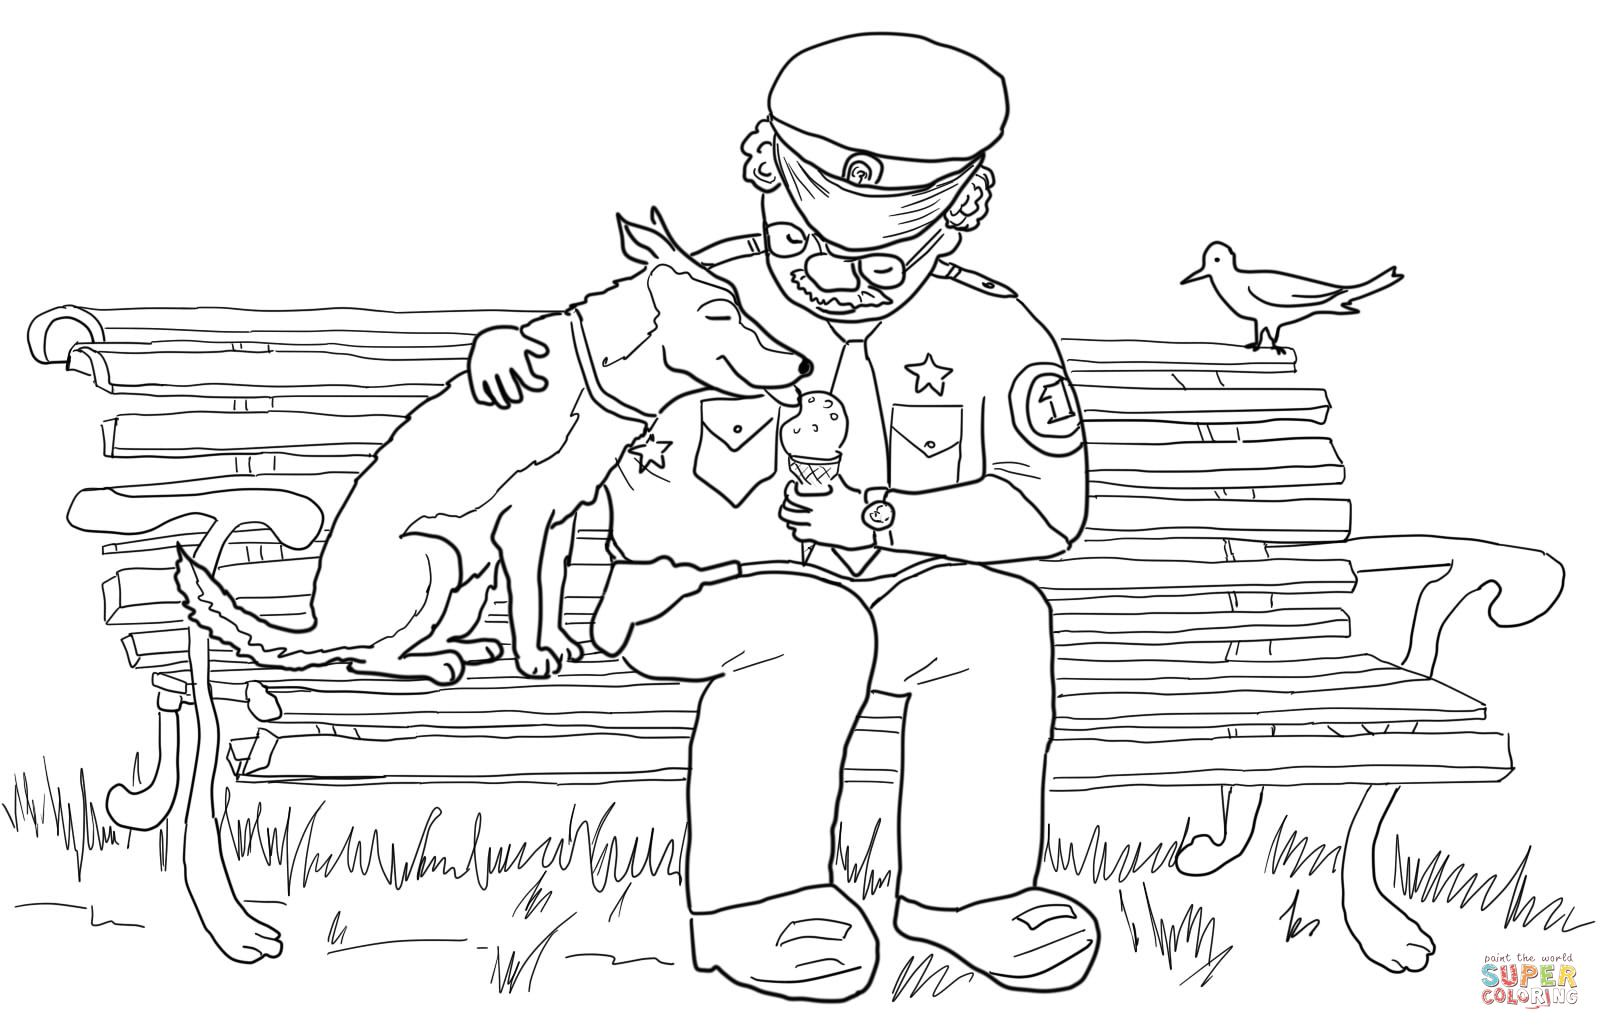 worksheet Officer Buckle And Gloria Worksheets officer buckle feeding ice cream to gloria the dog at park explore and more